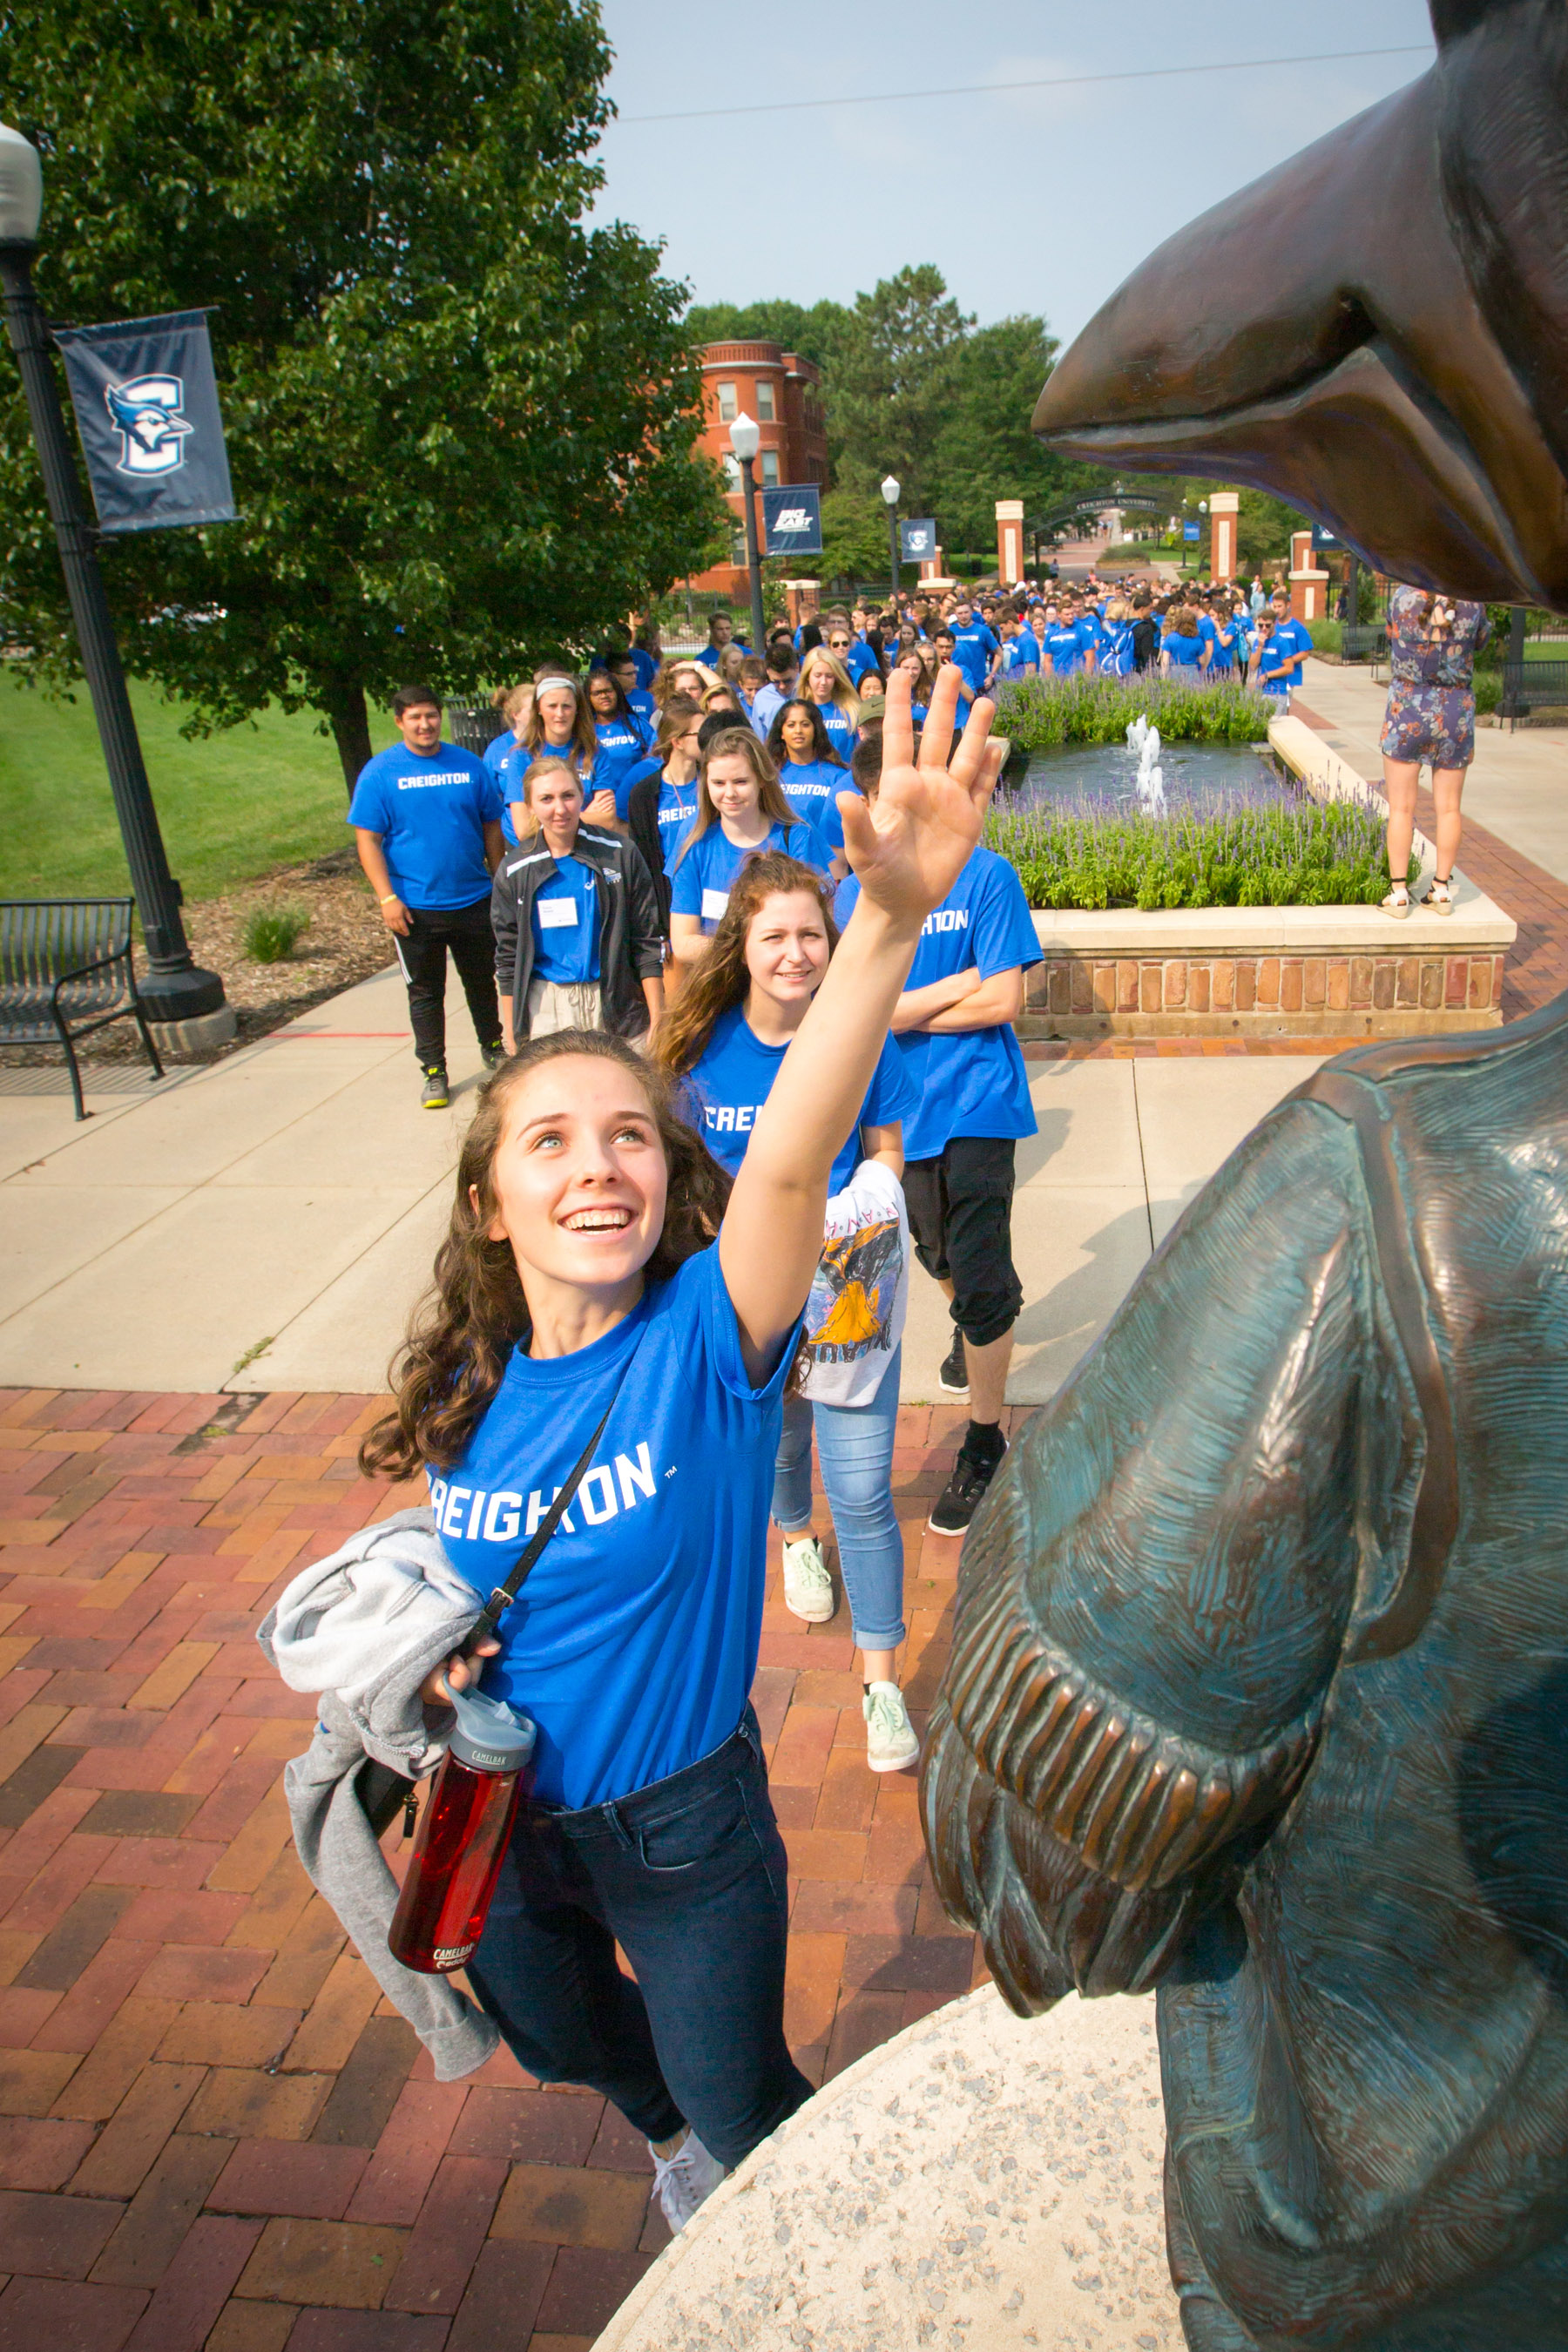 Creighton University students, all dressed in blue Creighton t-shirts, walked on the Creighton Pathway event, where they stopped to touch the beak of Billy Bluejay on their way to the Academic Convocation at the D.J. Sokol Arena (photo by Creighton University)